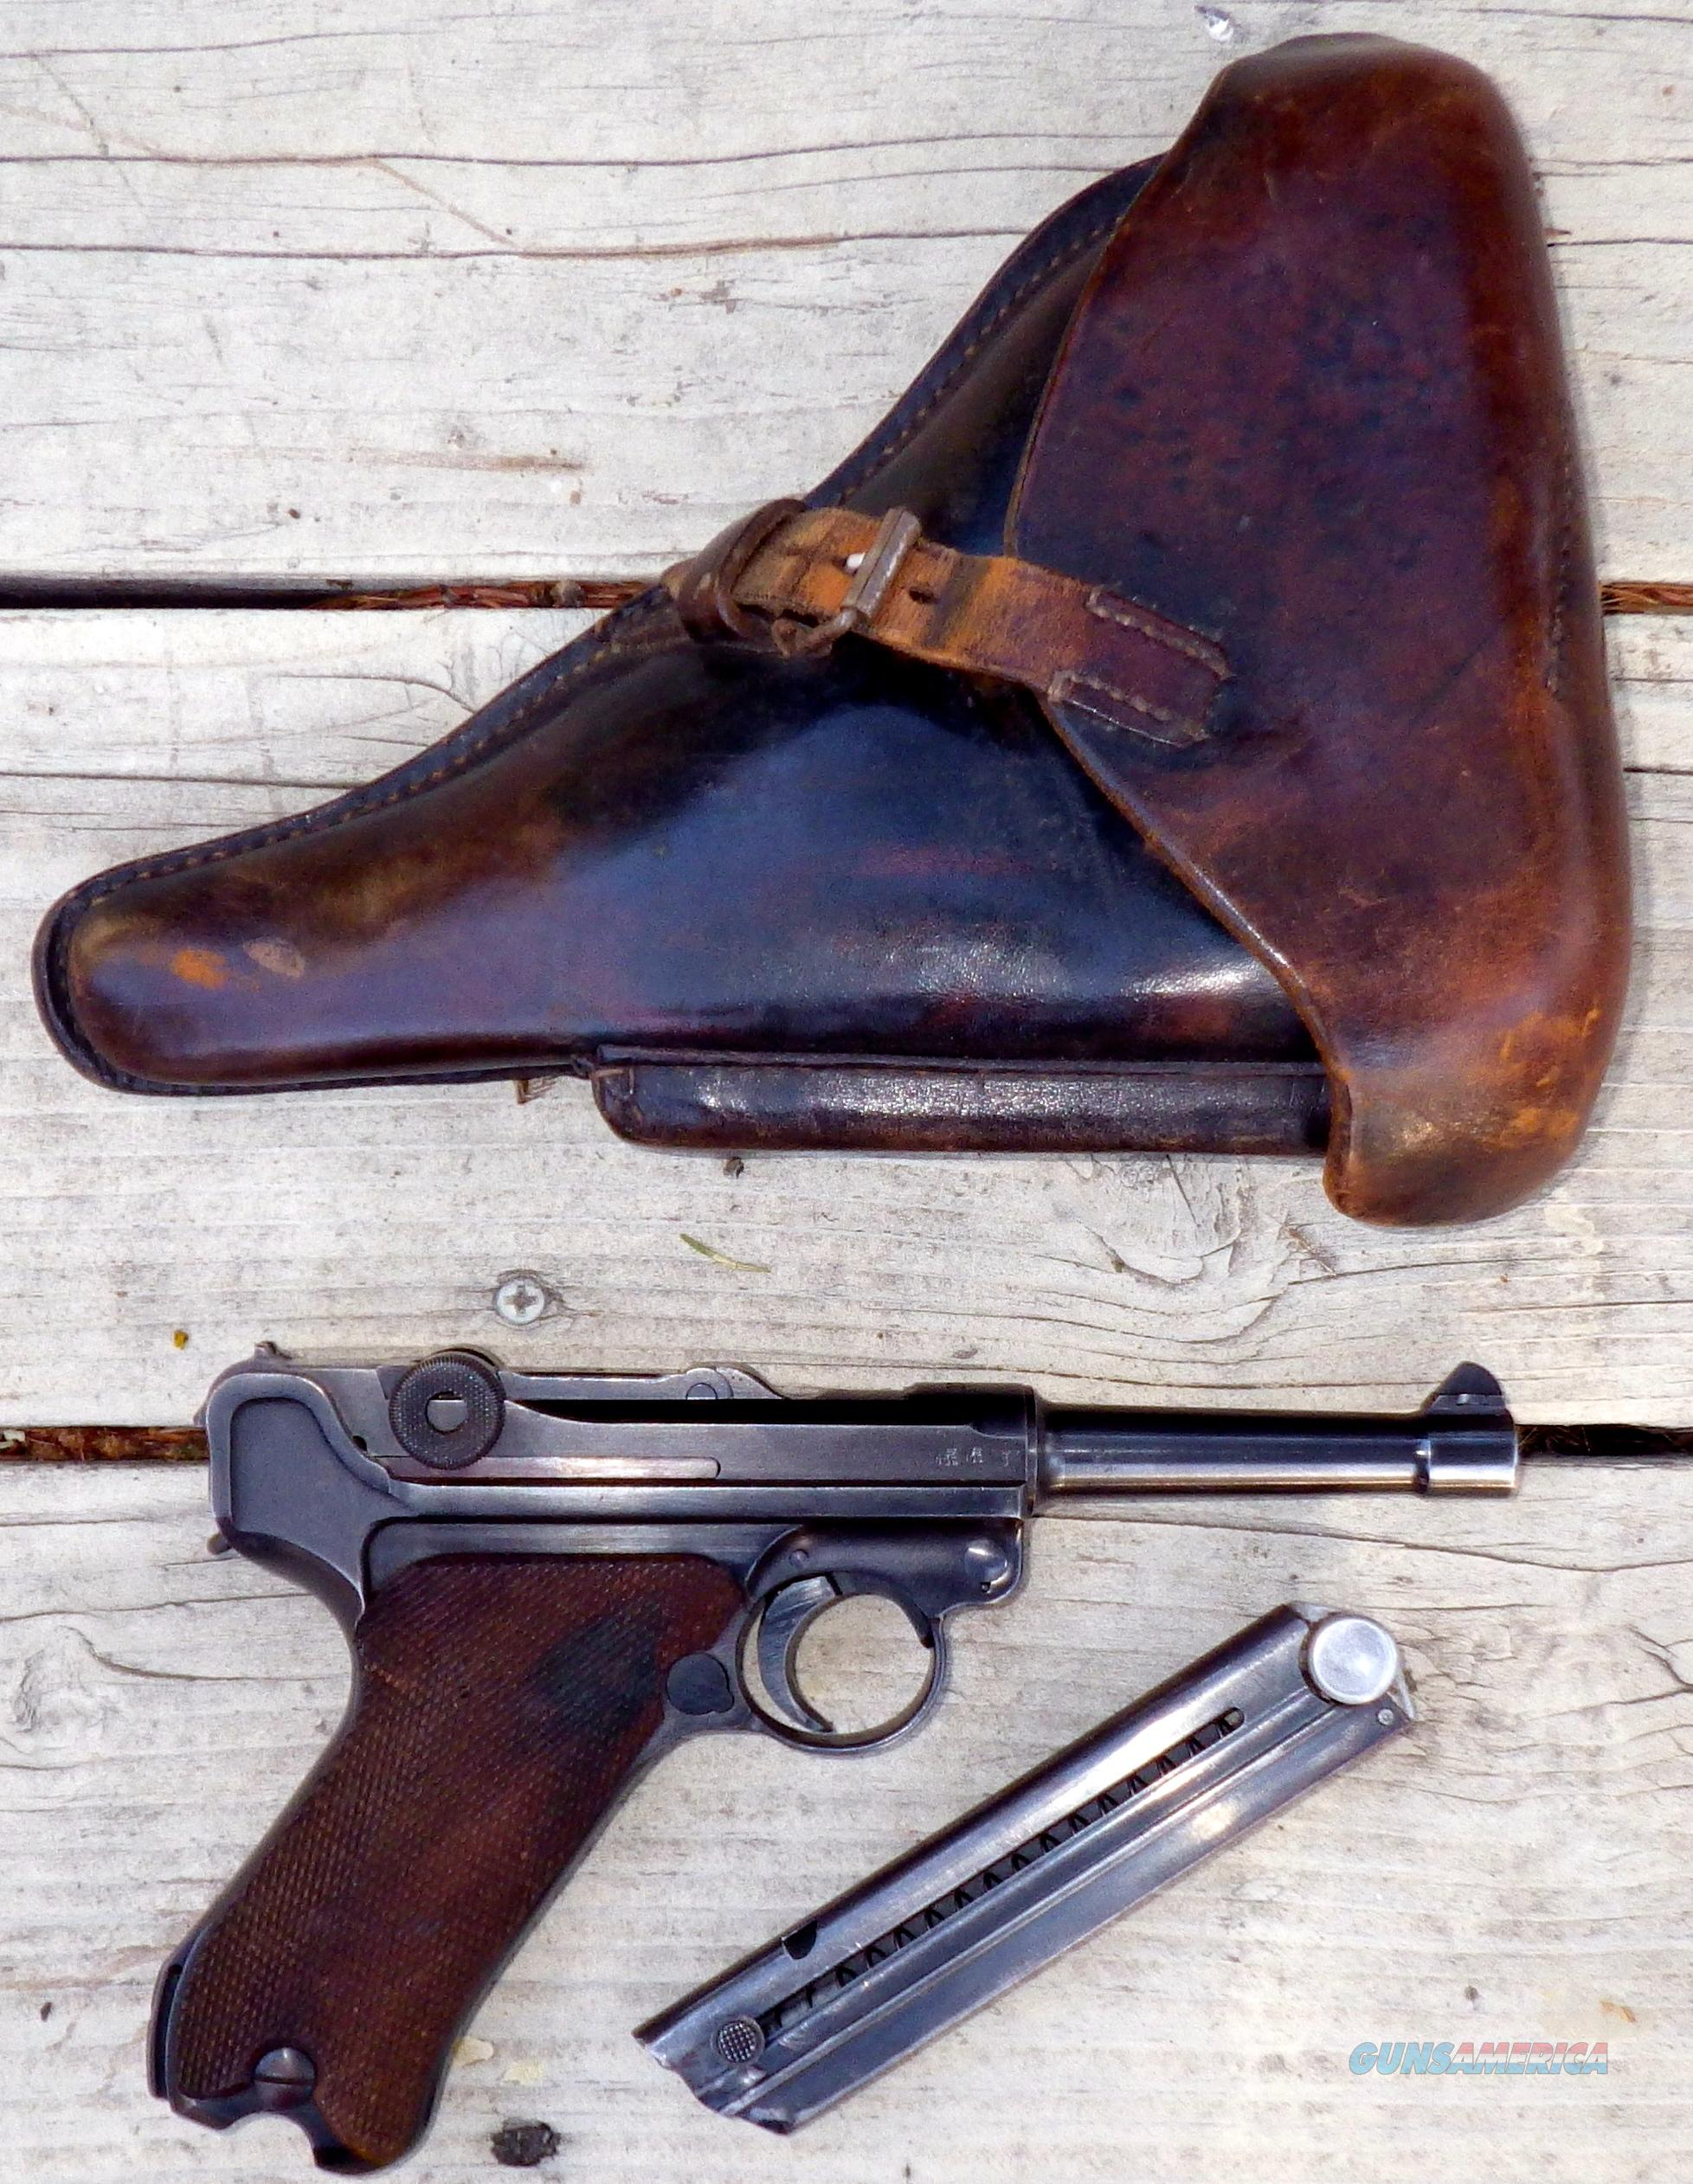 Luger 9mm with Nazi markings, holster, matching numbers  Guns > Pistols > Luger Pistols